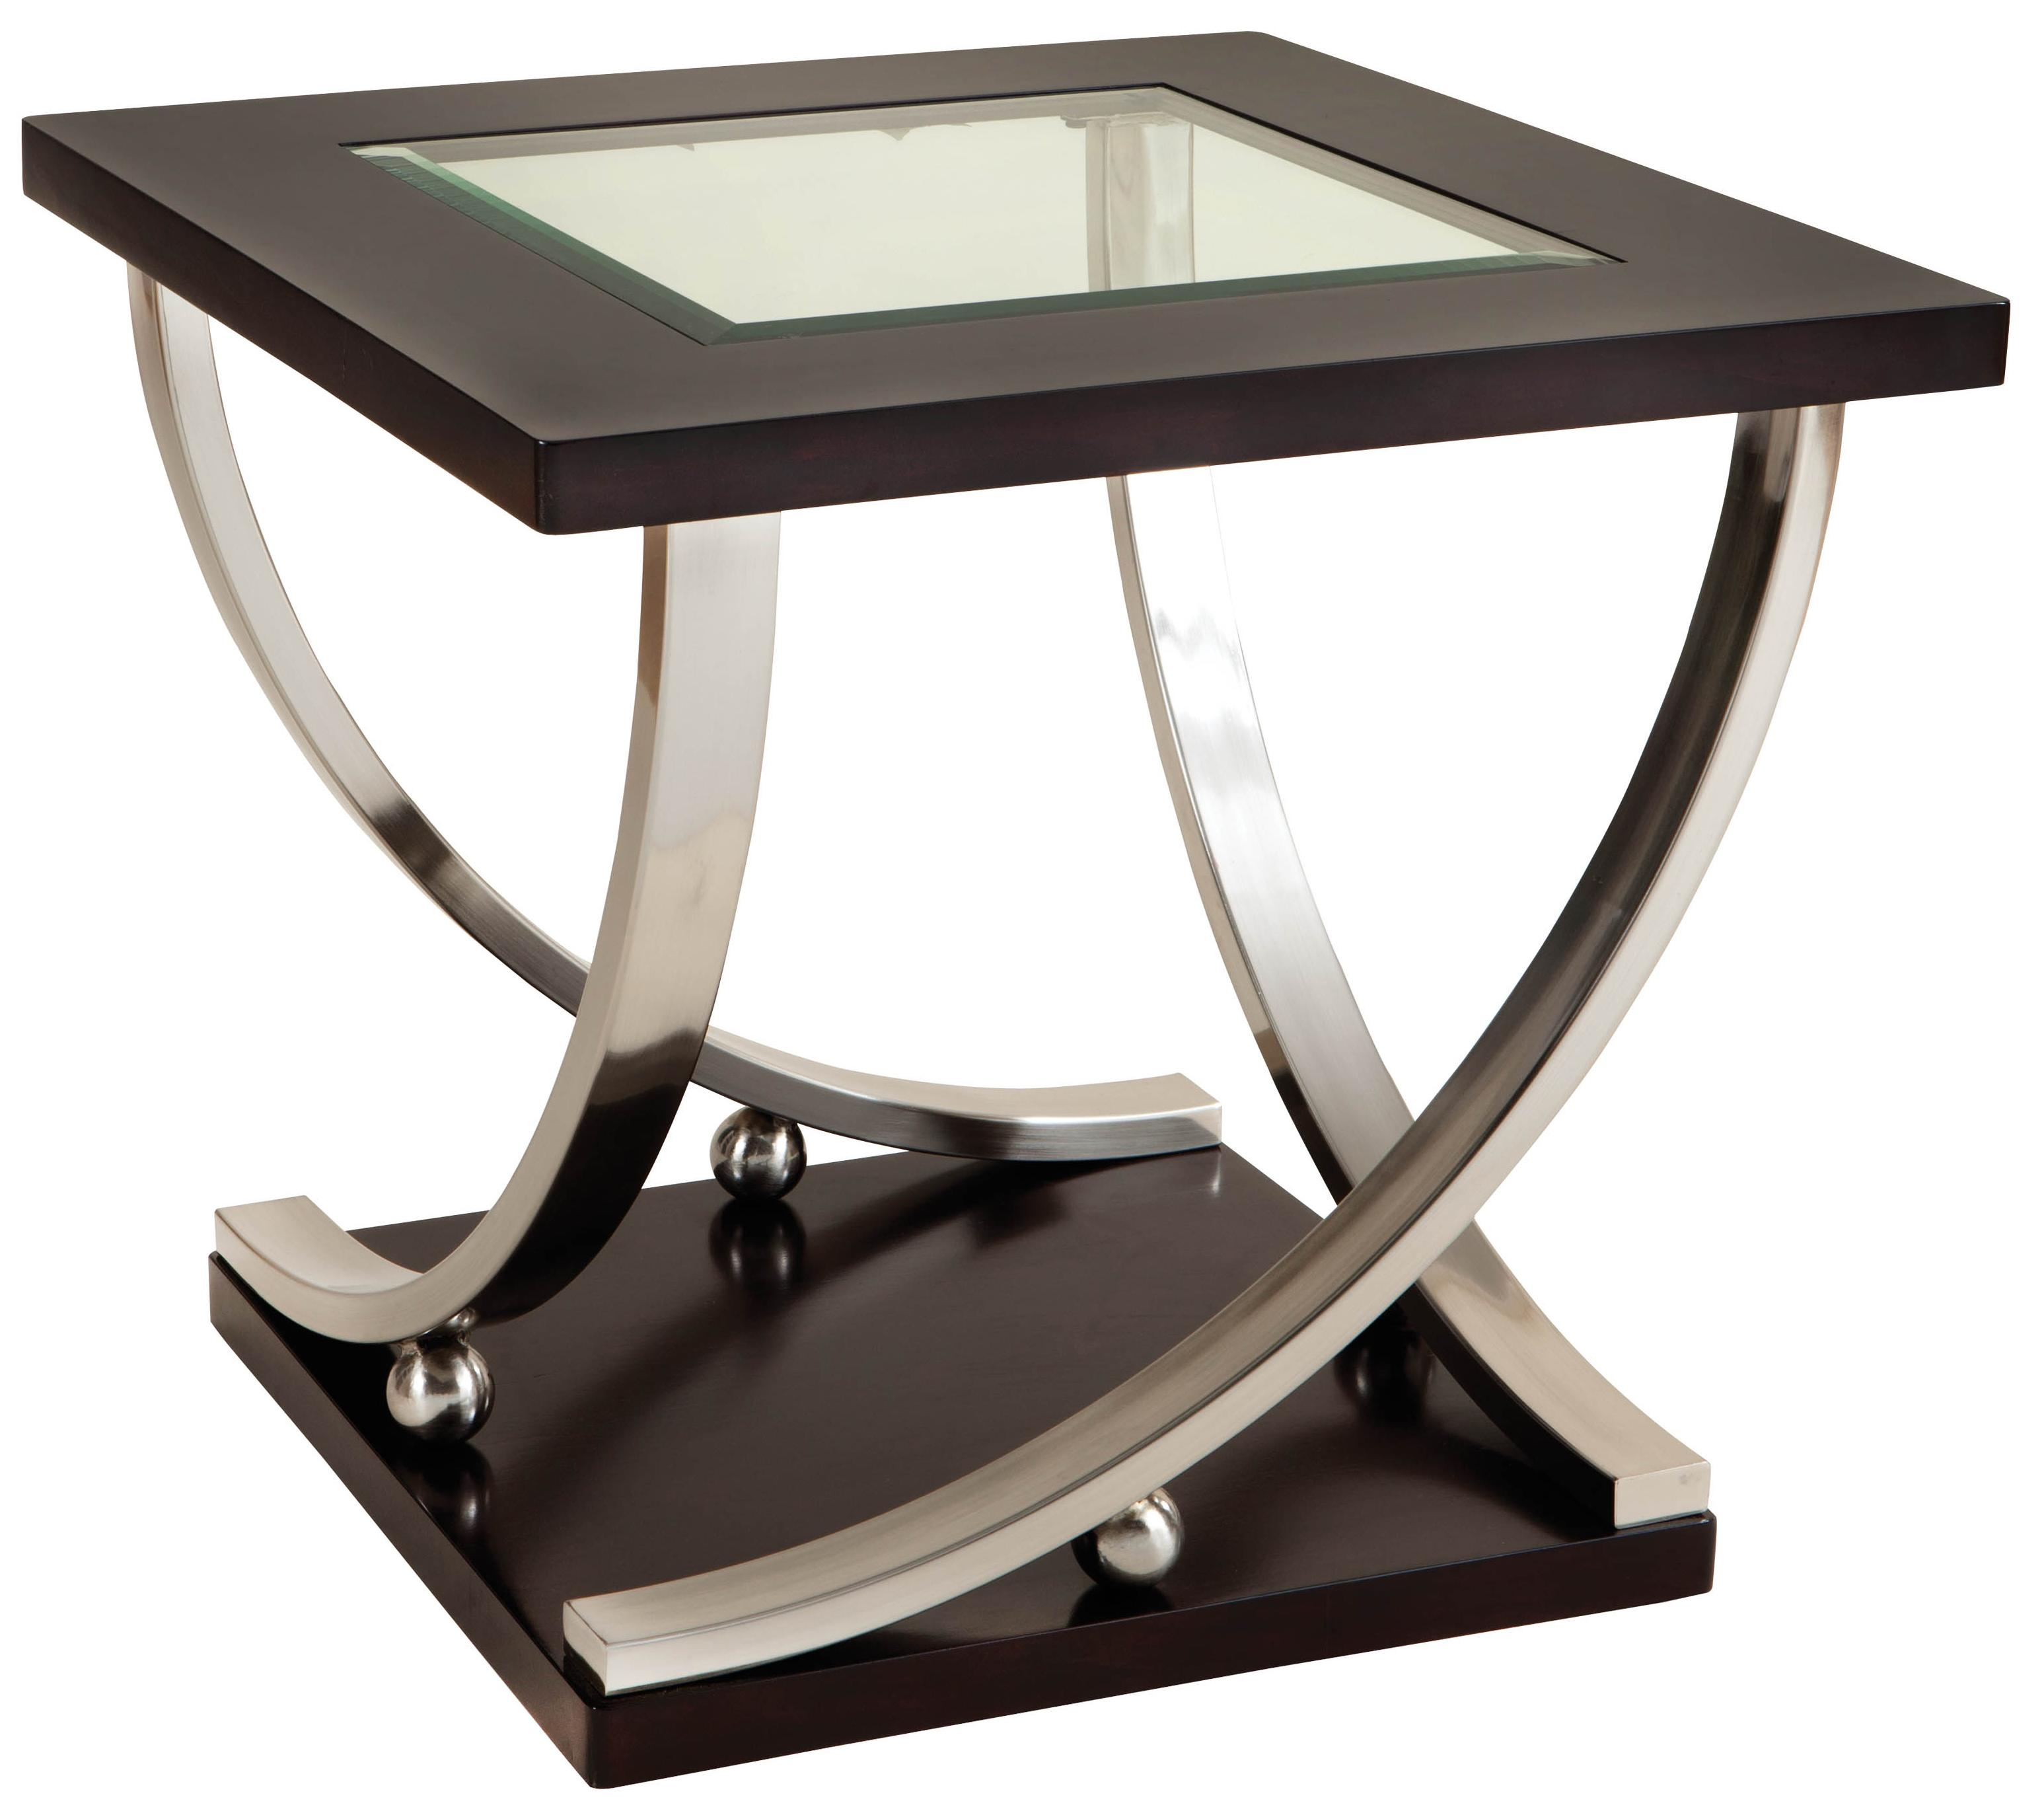 Standard Furniture Melrose Square End Table With Glass Table Top regarding dimensions 3094 X 2744